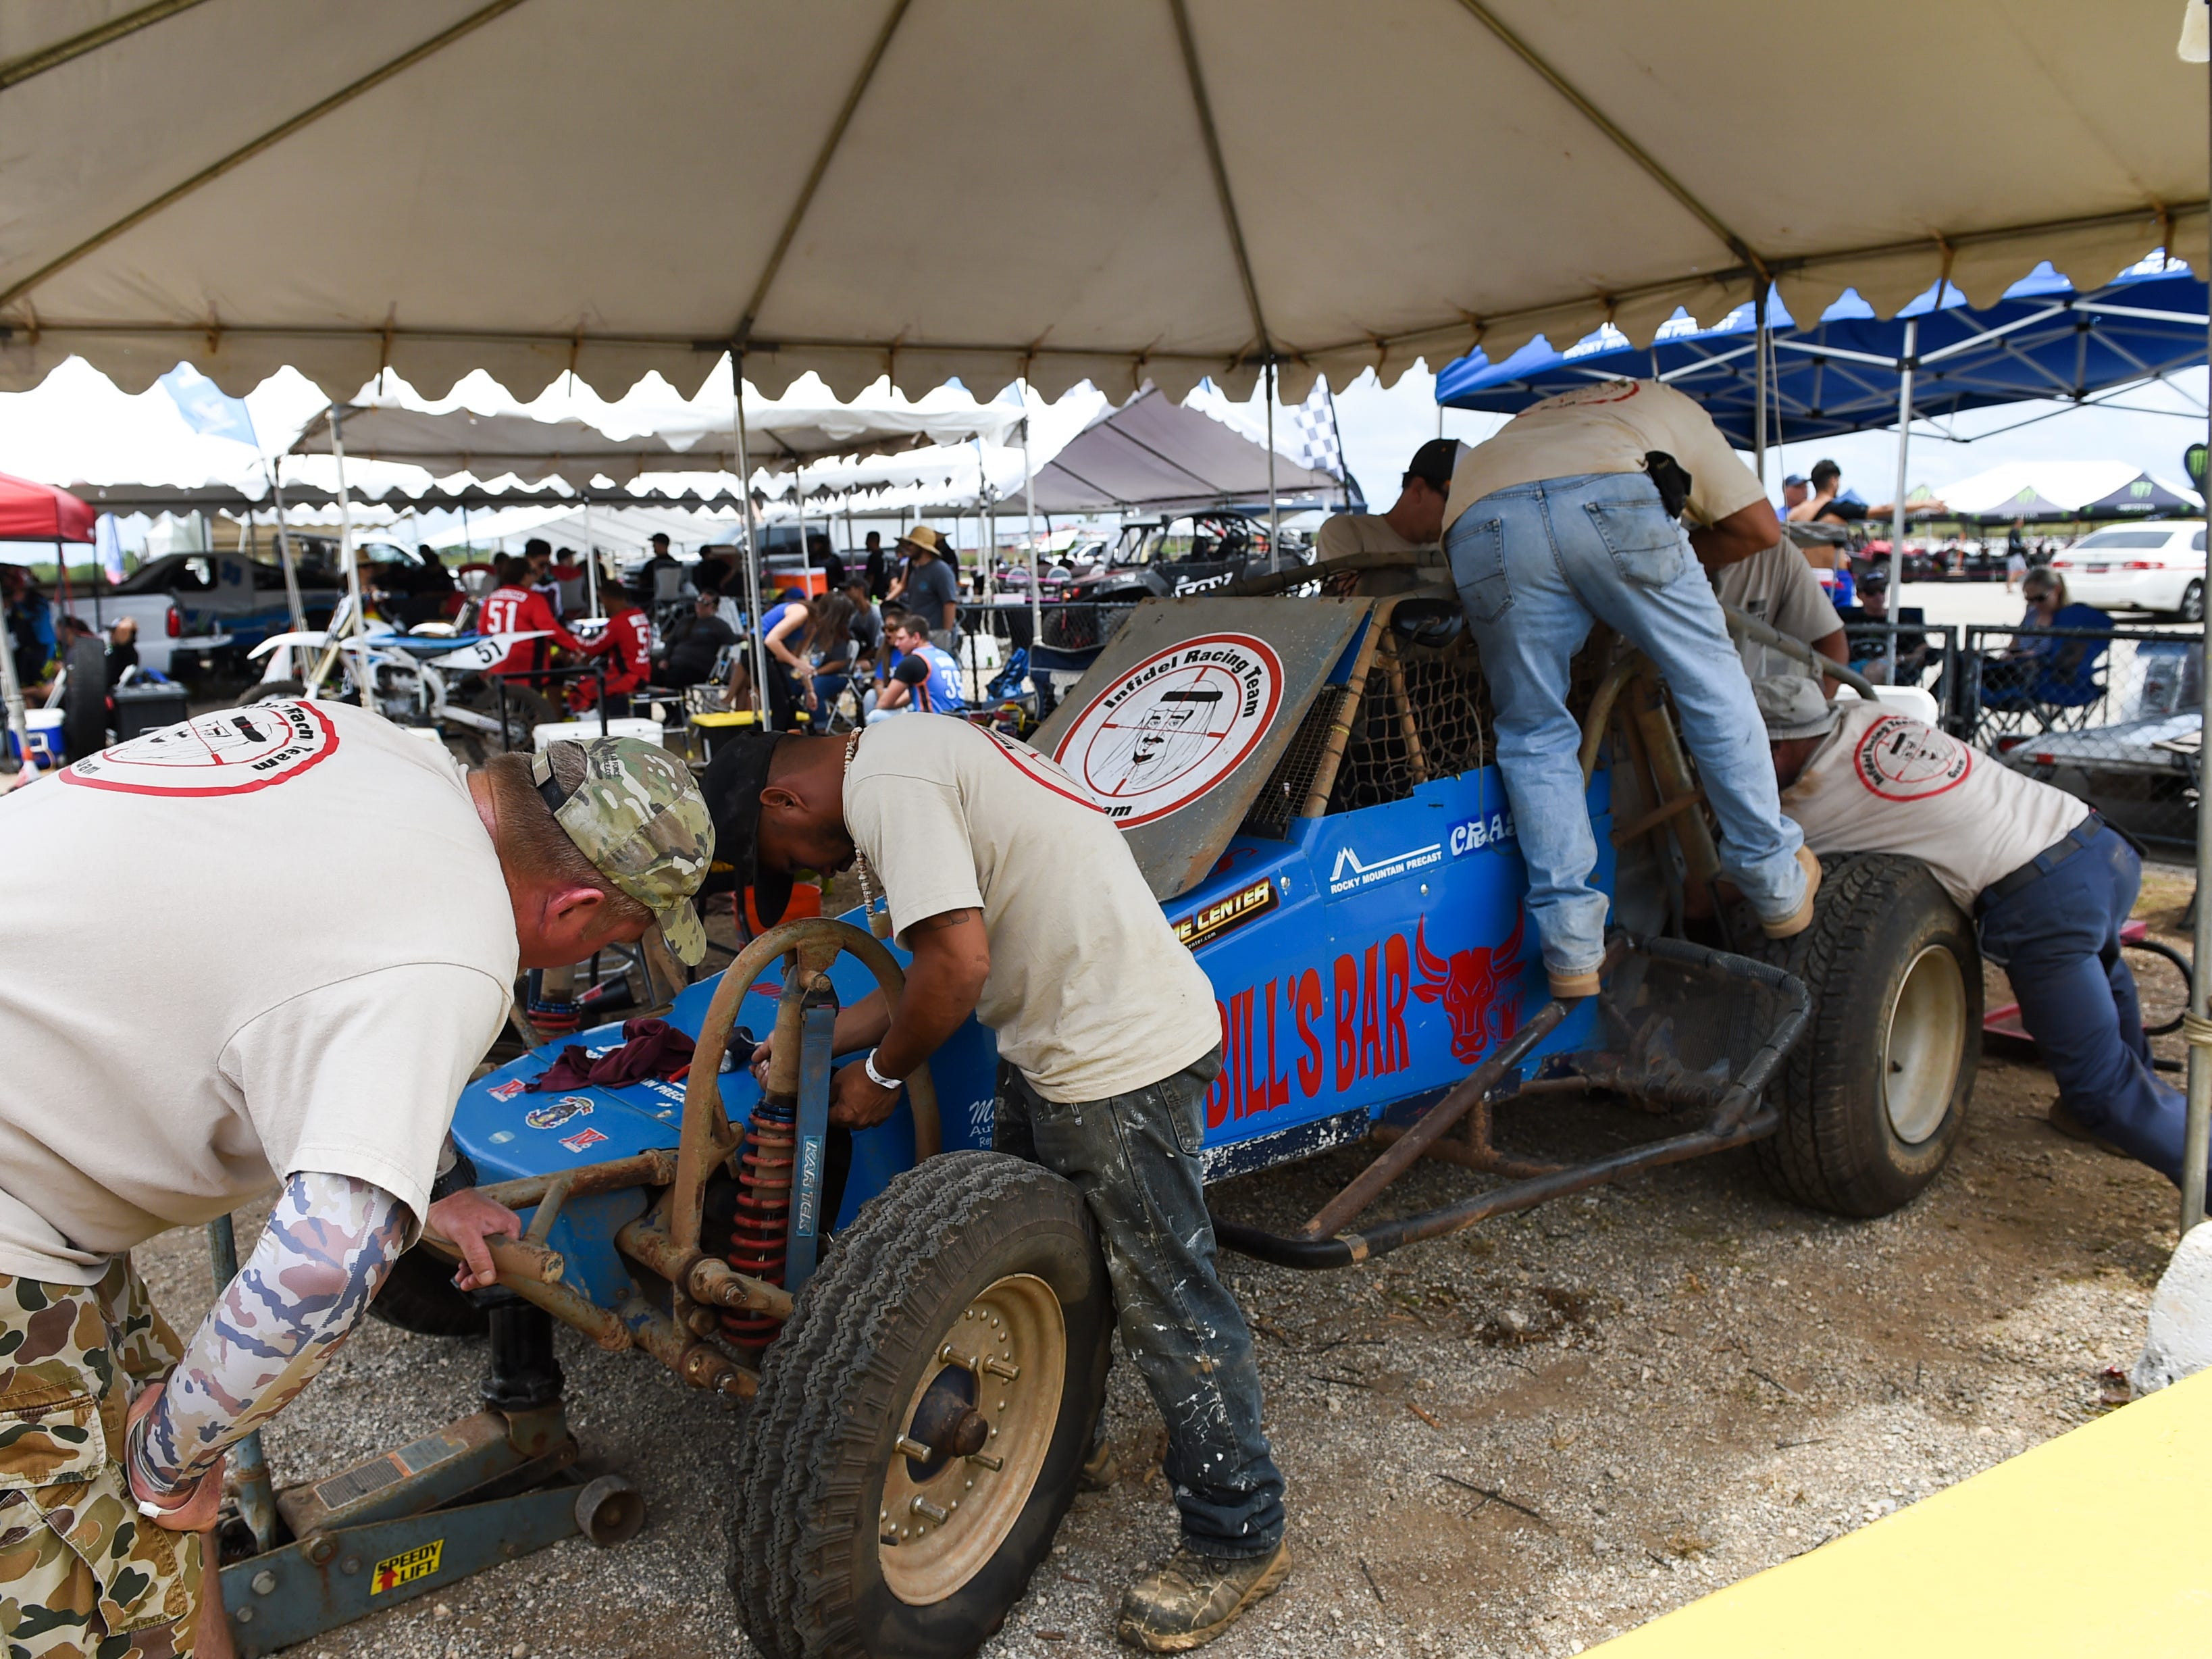 Infidel Racing Team Guam crew members work on one of their buggies during the 39th Annual APL Smokin' Wheels at the Guam International Raceway in Yigo, April 14, 2019.